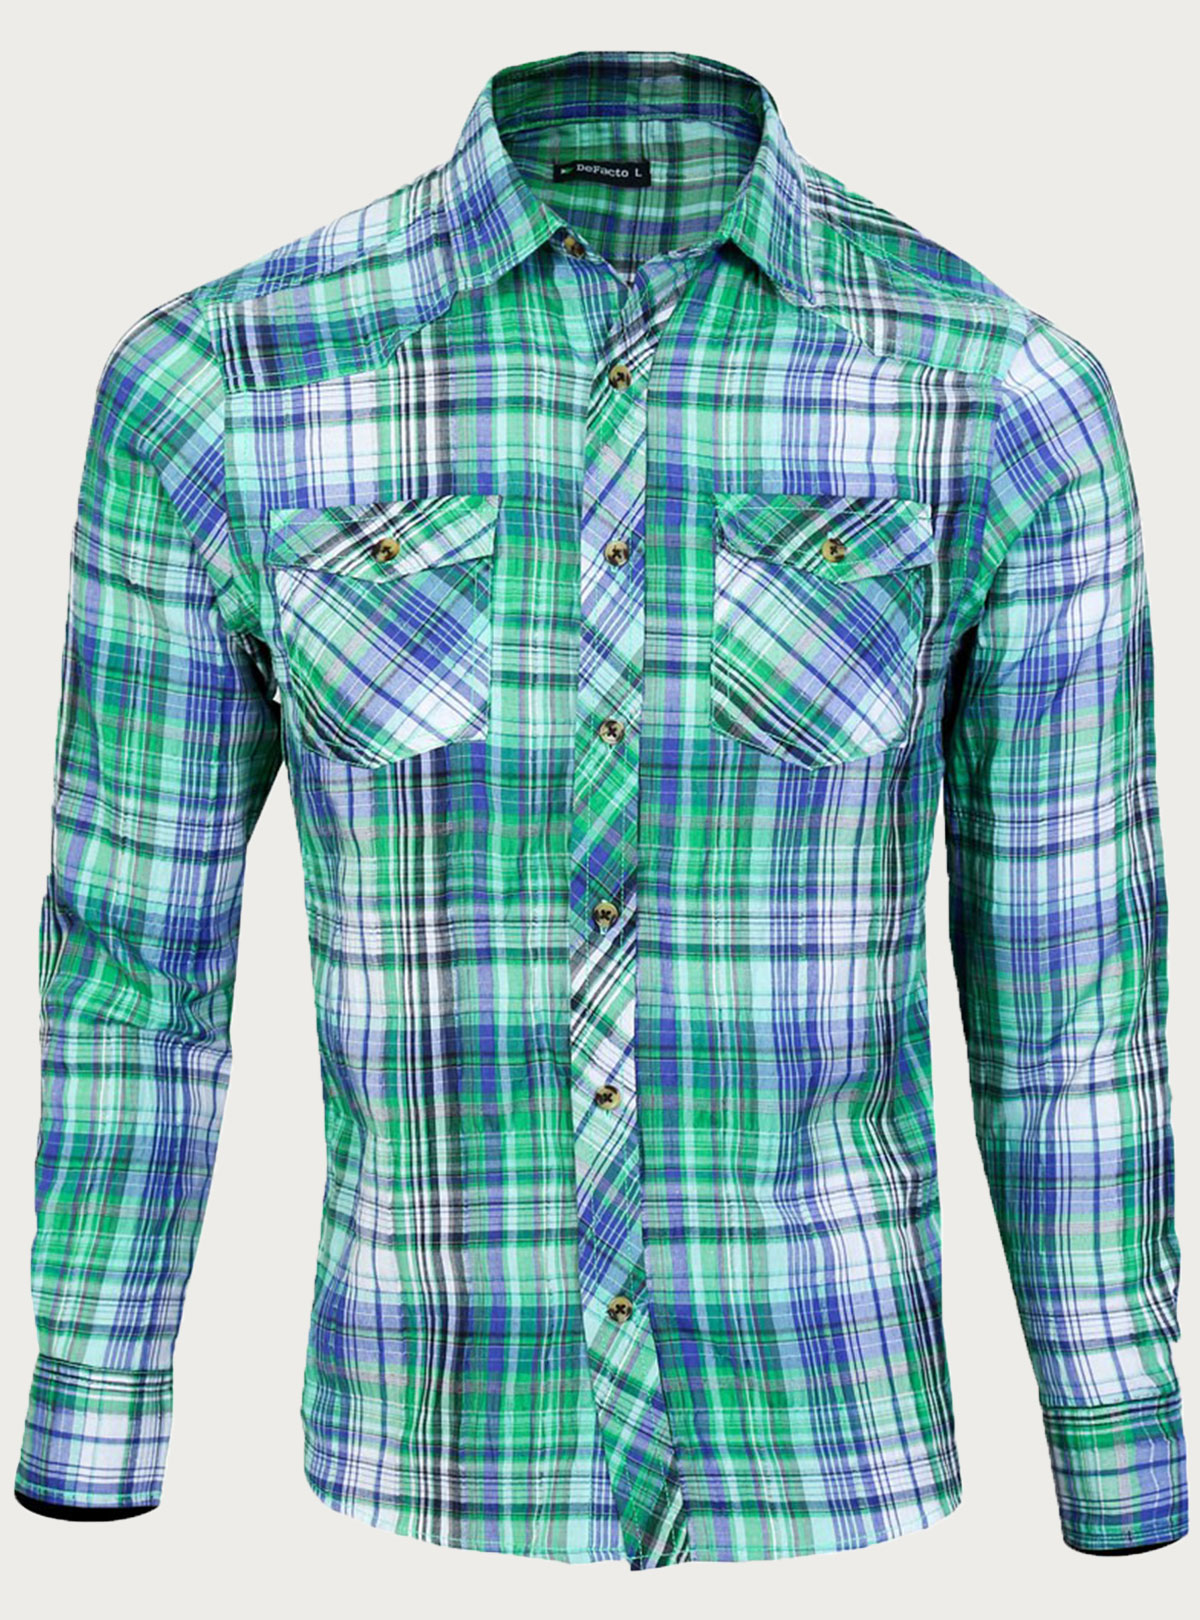 STYLISH CASUAL SHIRT BY-DEFACTO